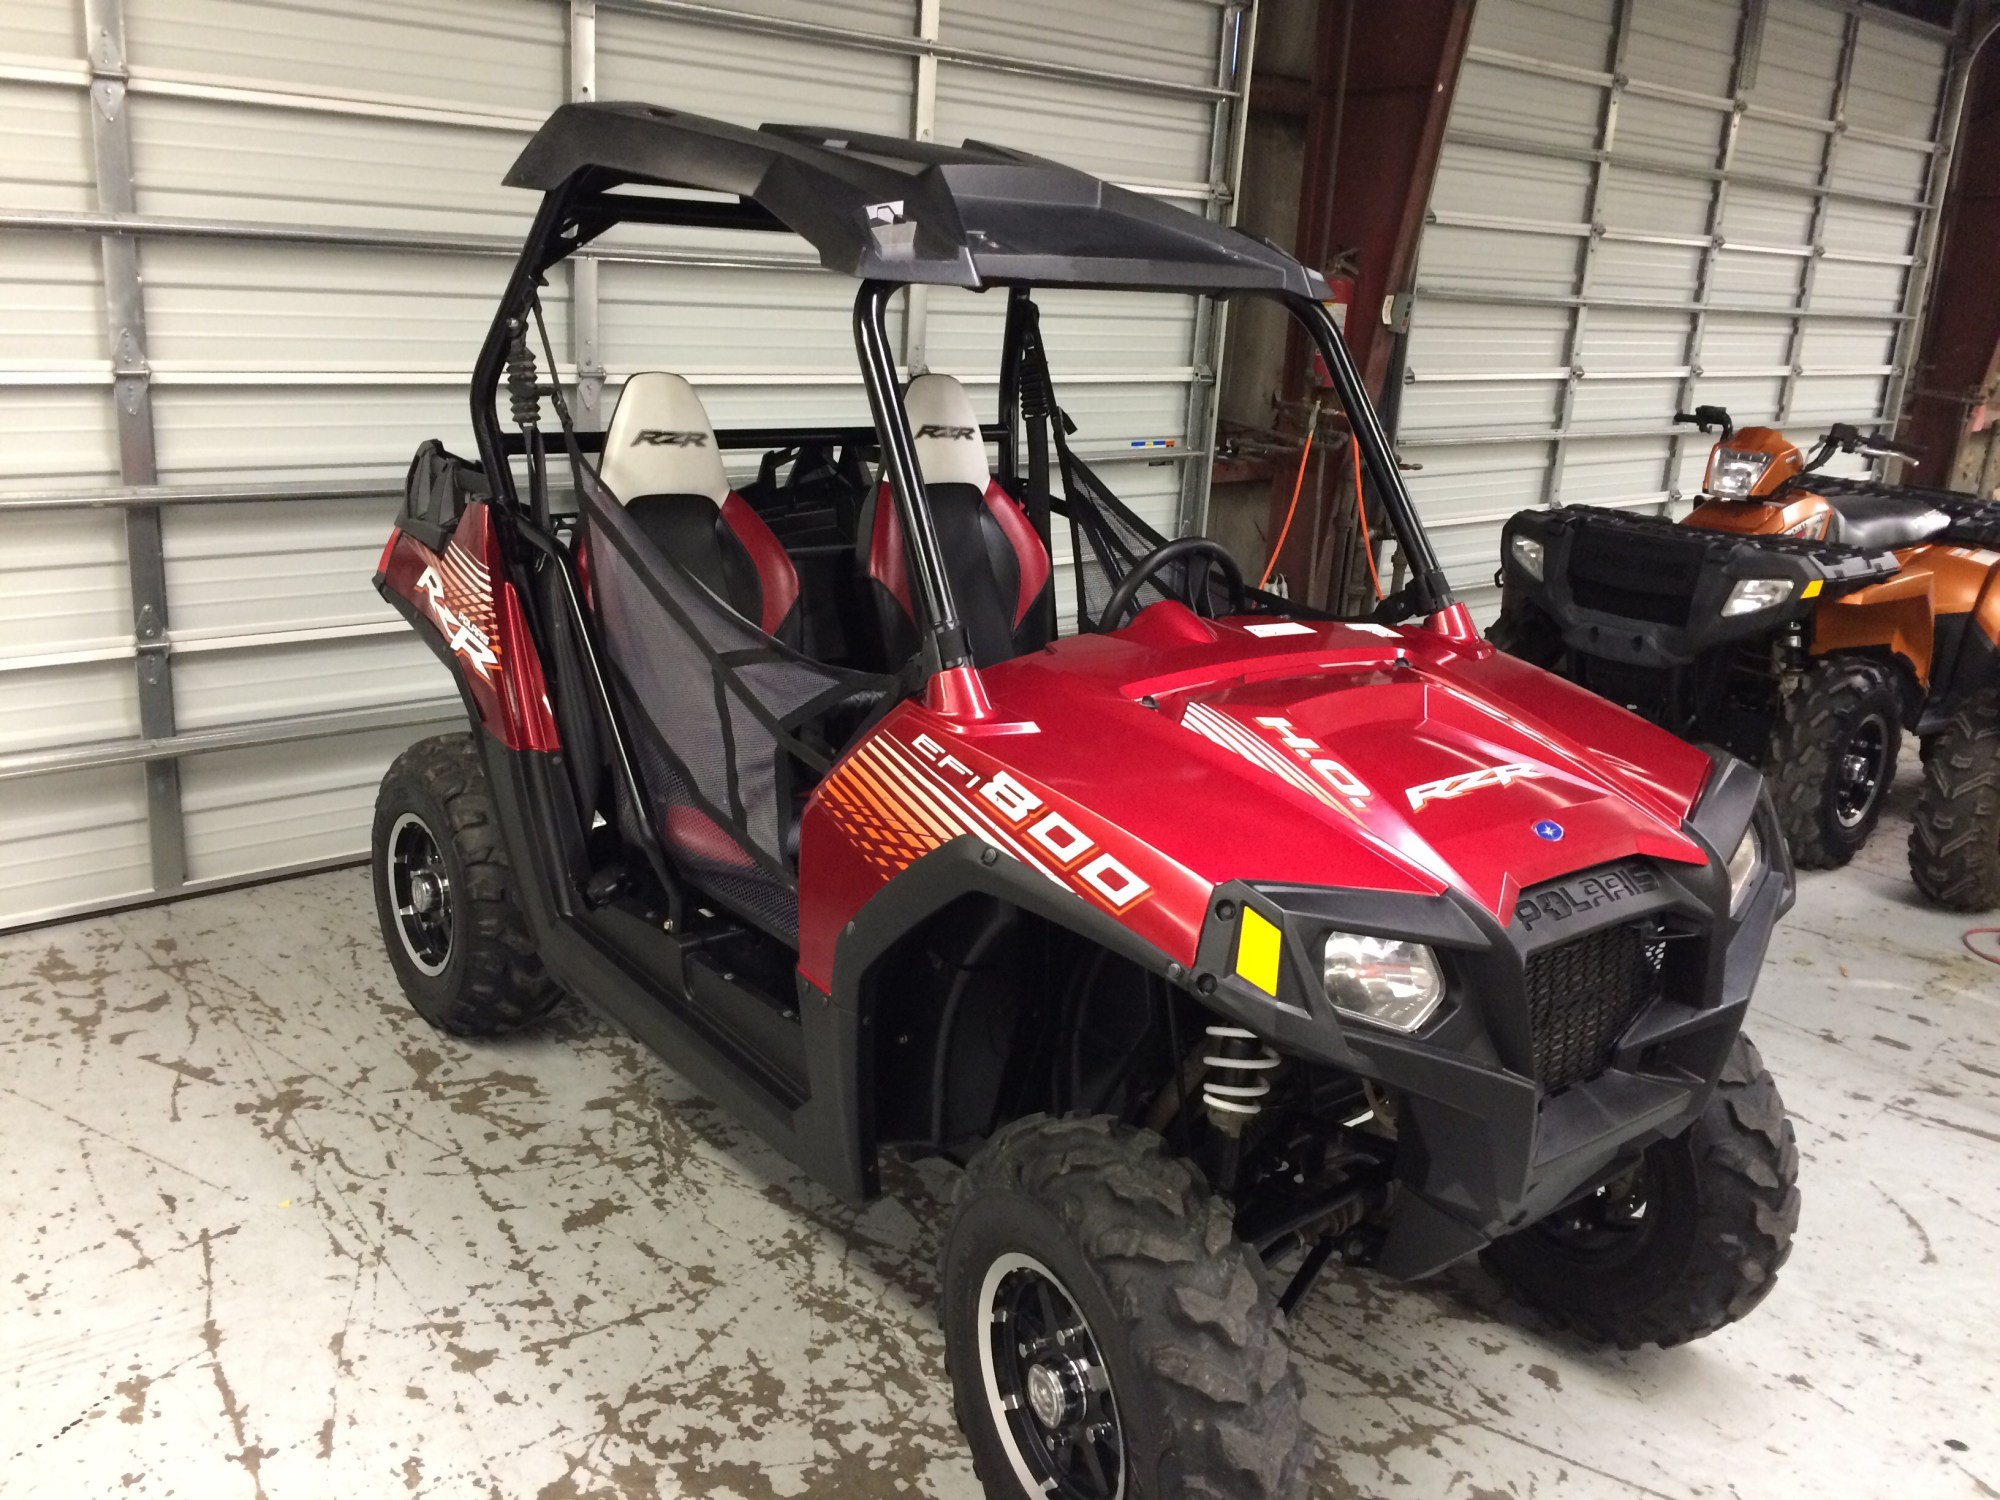 hight resolution of 2013 polaris rzr 800 le 1900 miles excellent condition 50 trail 9700